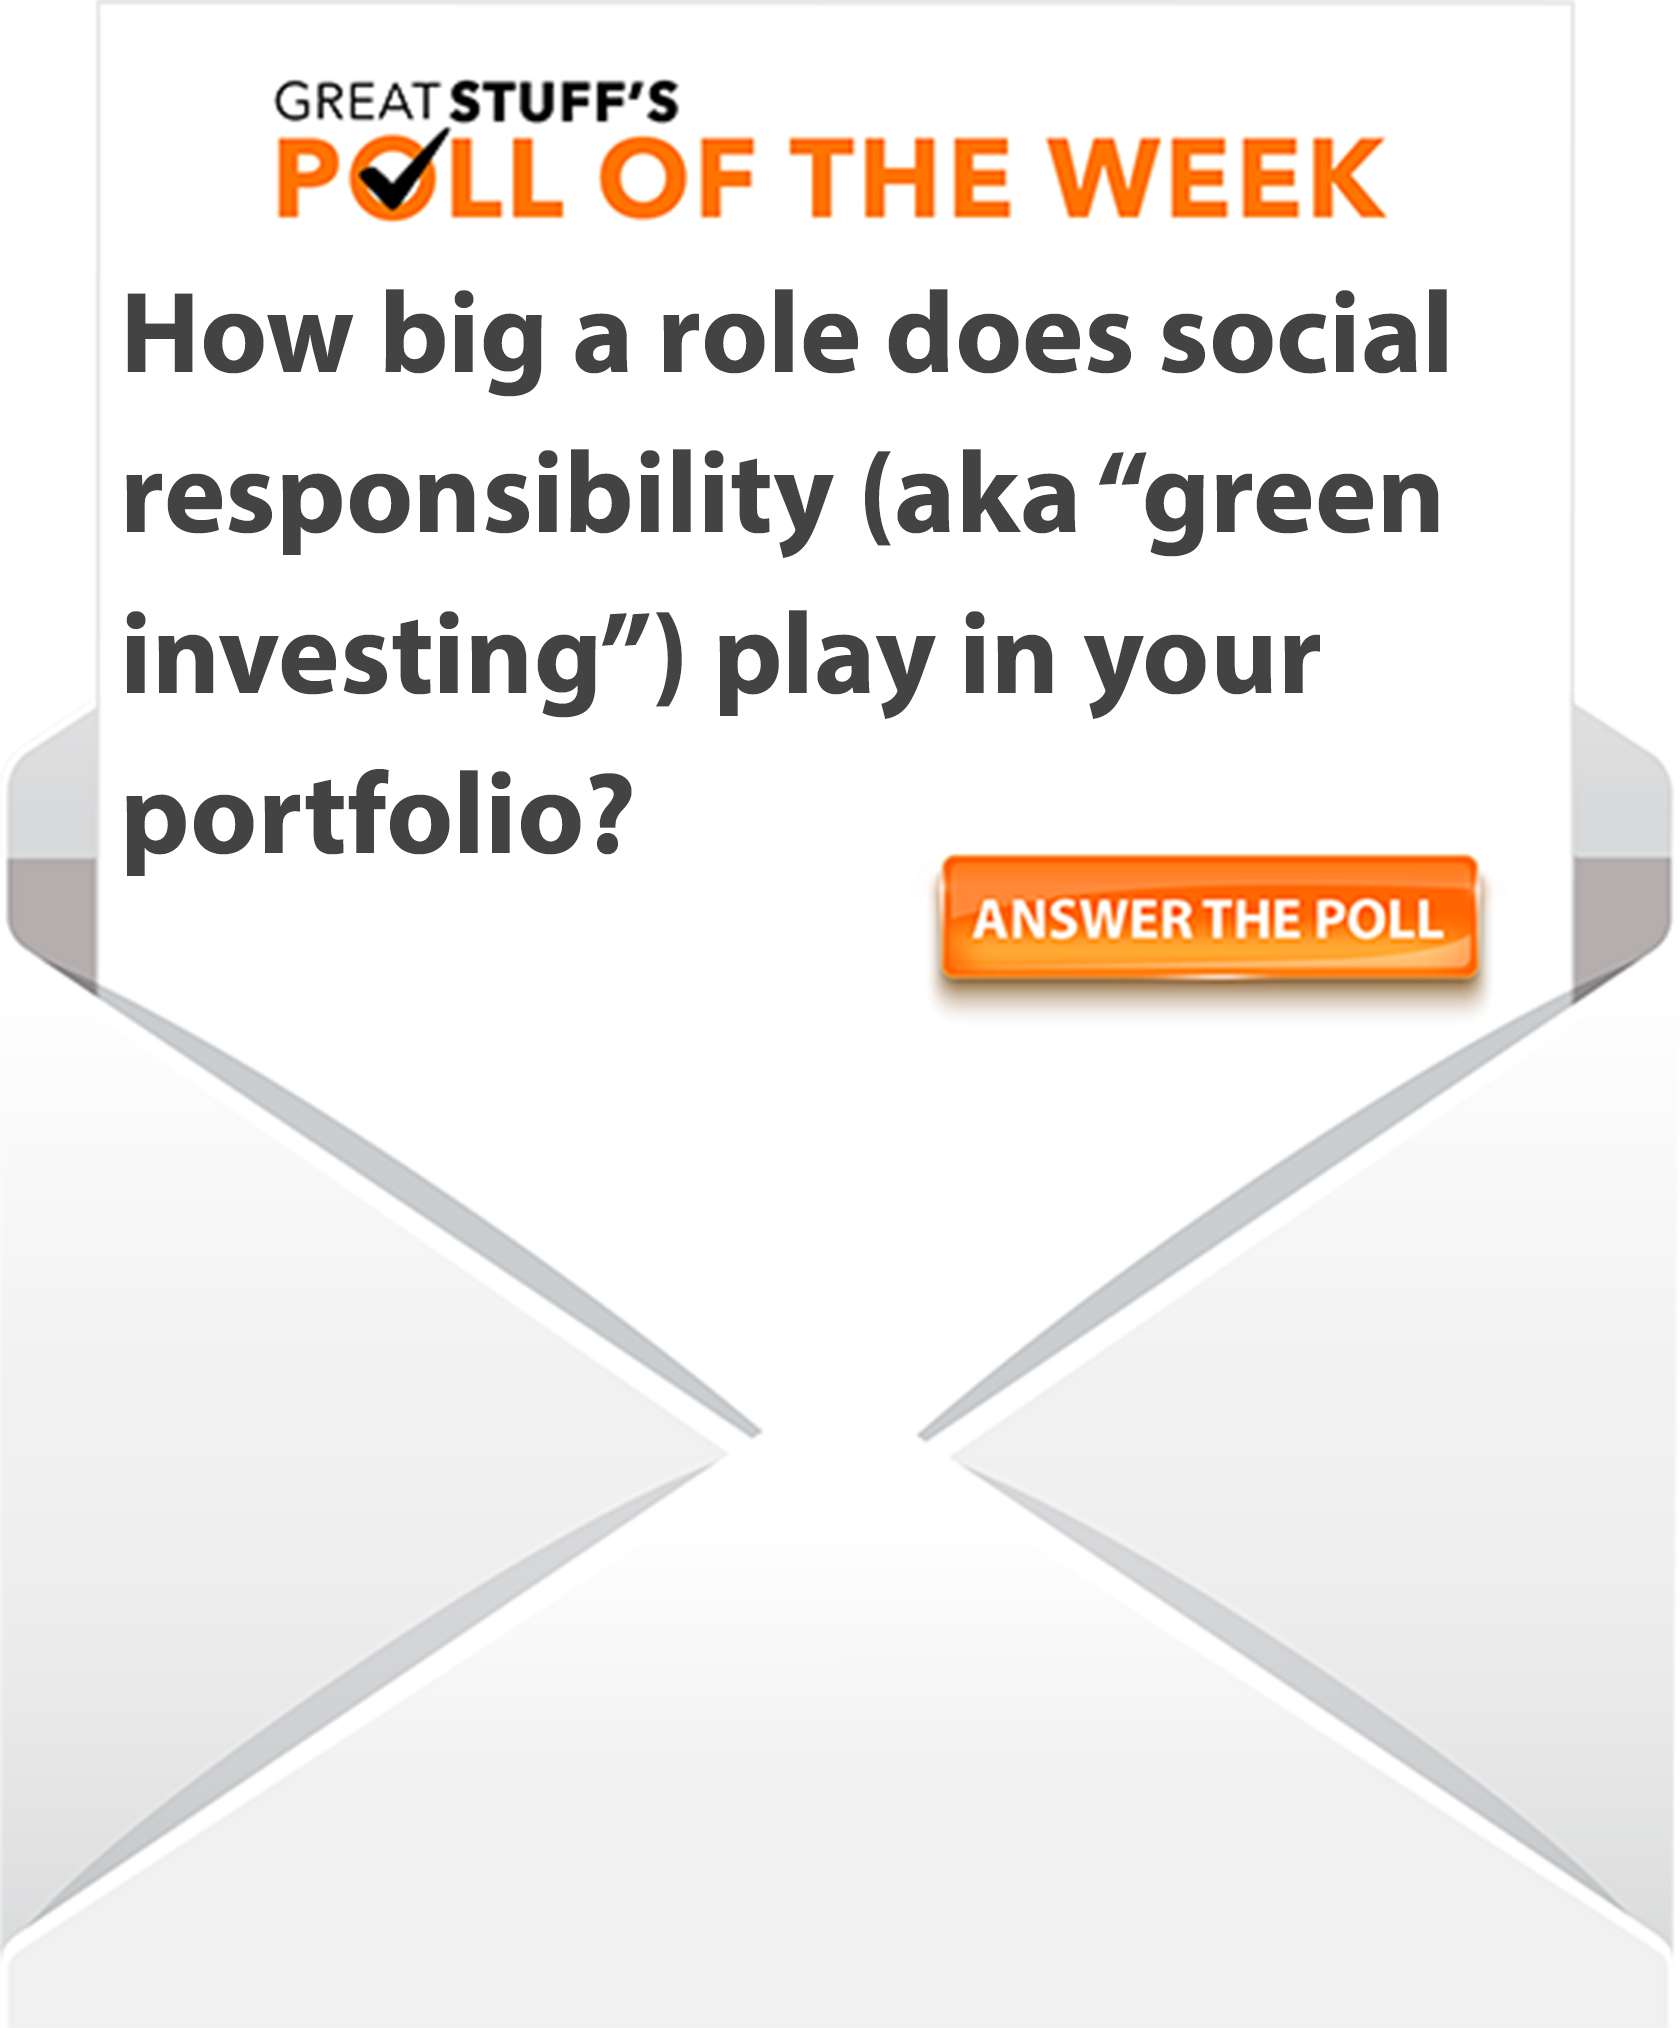 Great Stuff Poll on socially responsible investing.